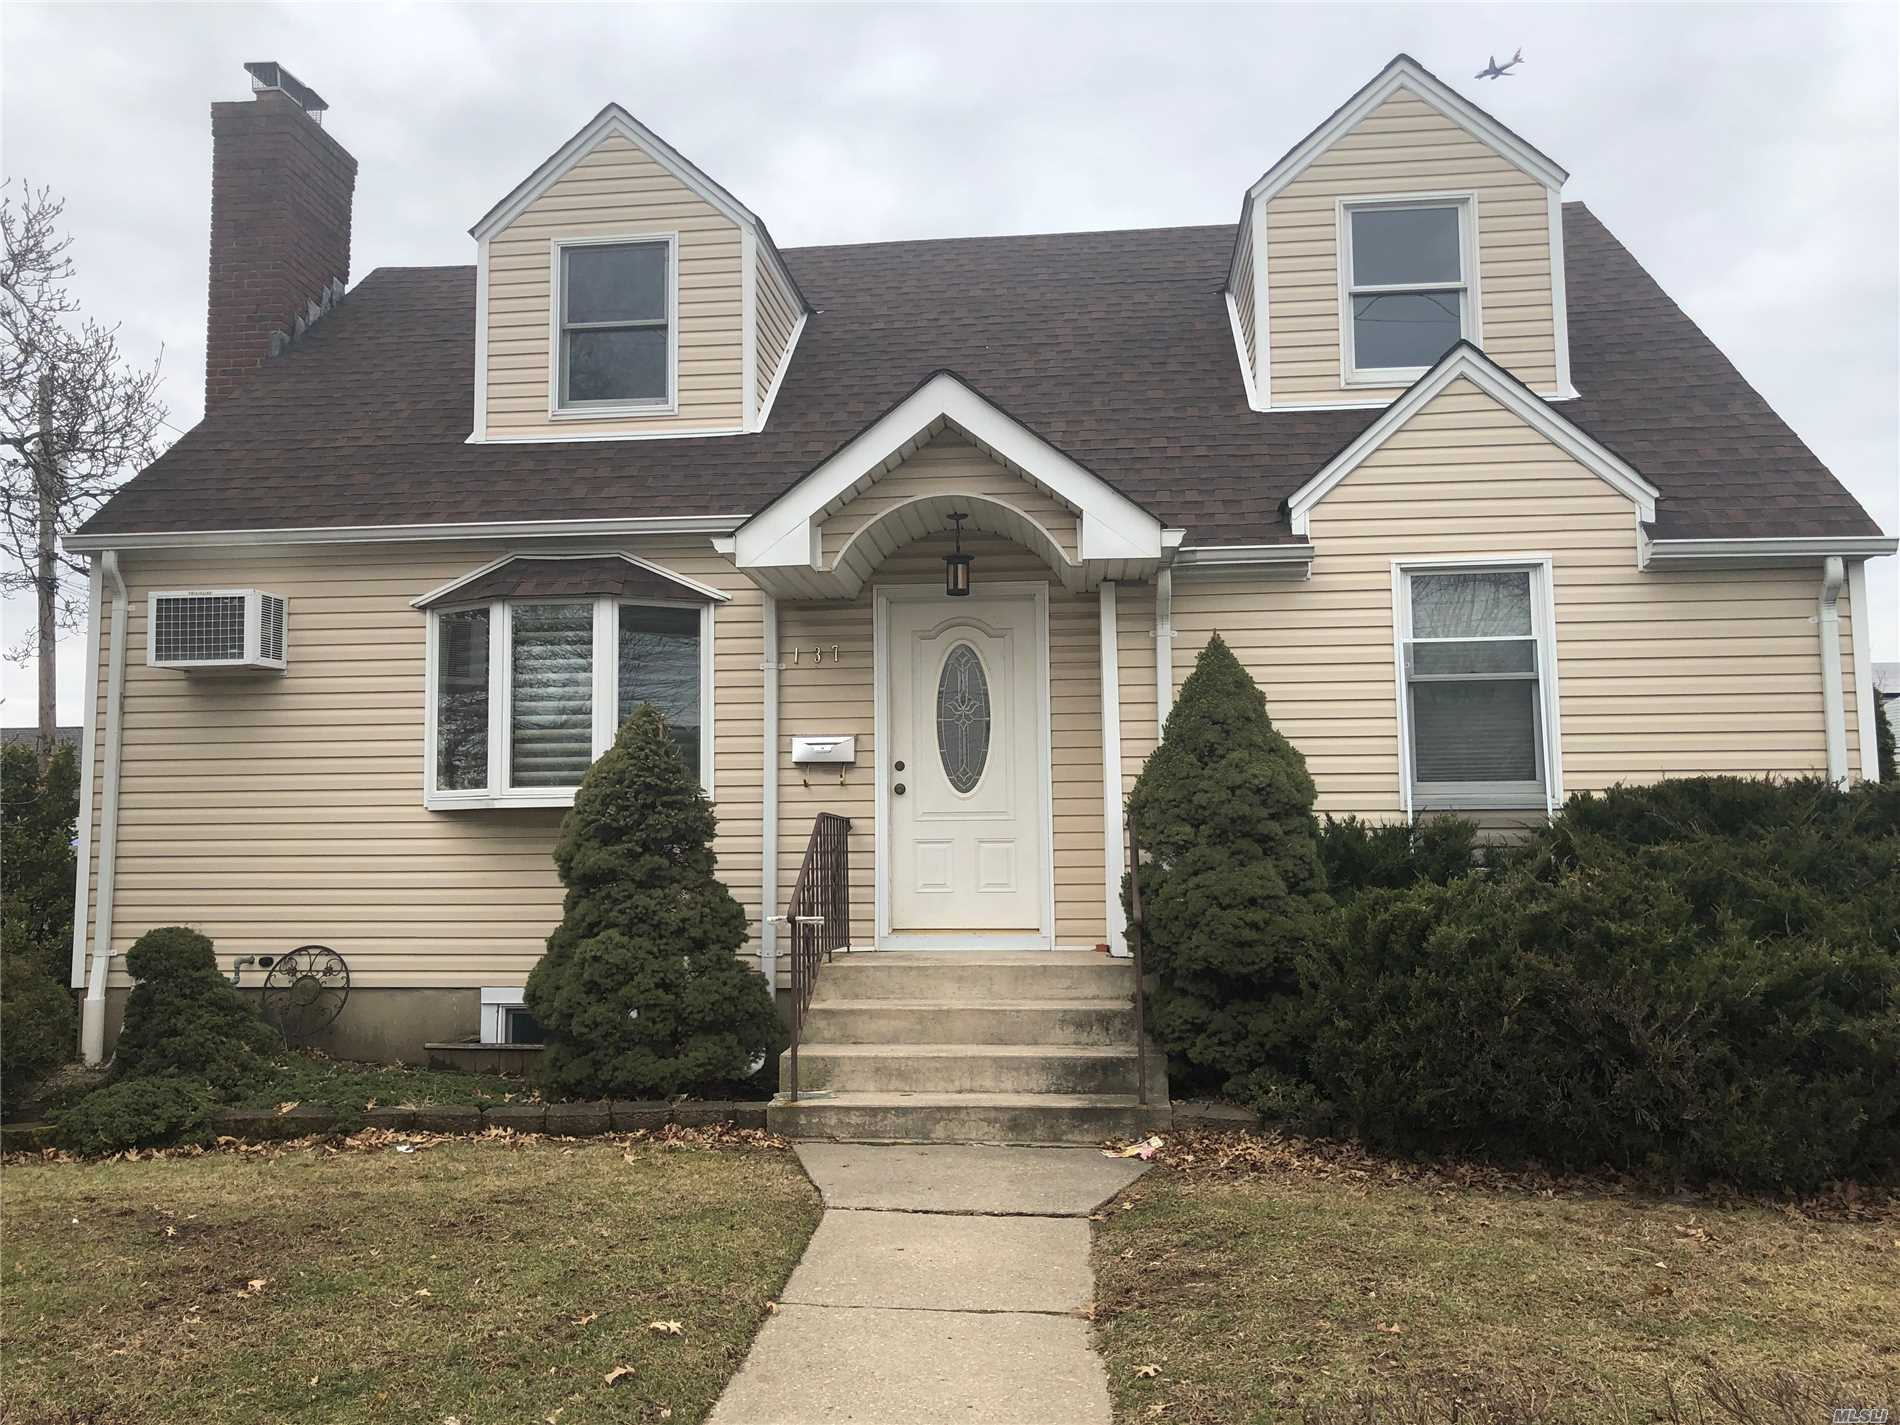 Beautiful 1 Family House For Sale. North From Hempstead Tpke. Full Finished Basement With Ose. Possible Mother And Daughter With Proper Permit.